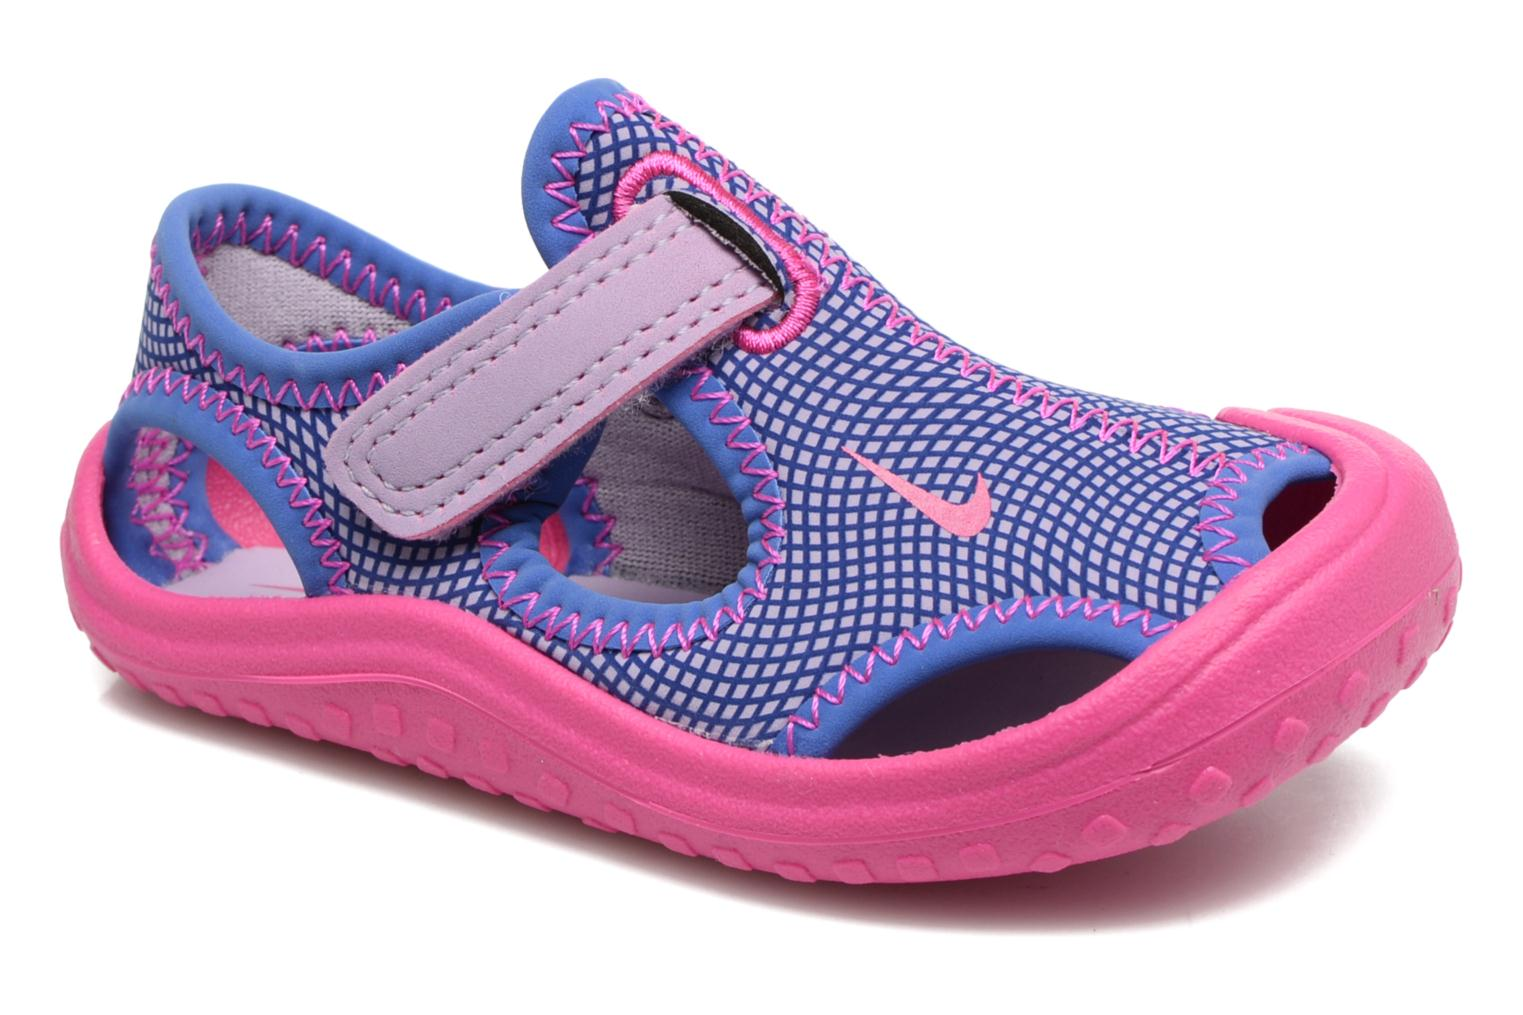 ... Sandals 92efb35 Nike Nike Sunray Protect (Td) Pink detailed view Pair  view 94efe125 ... acabc6e0f552